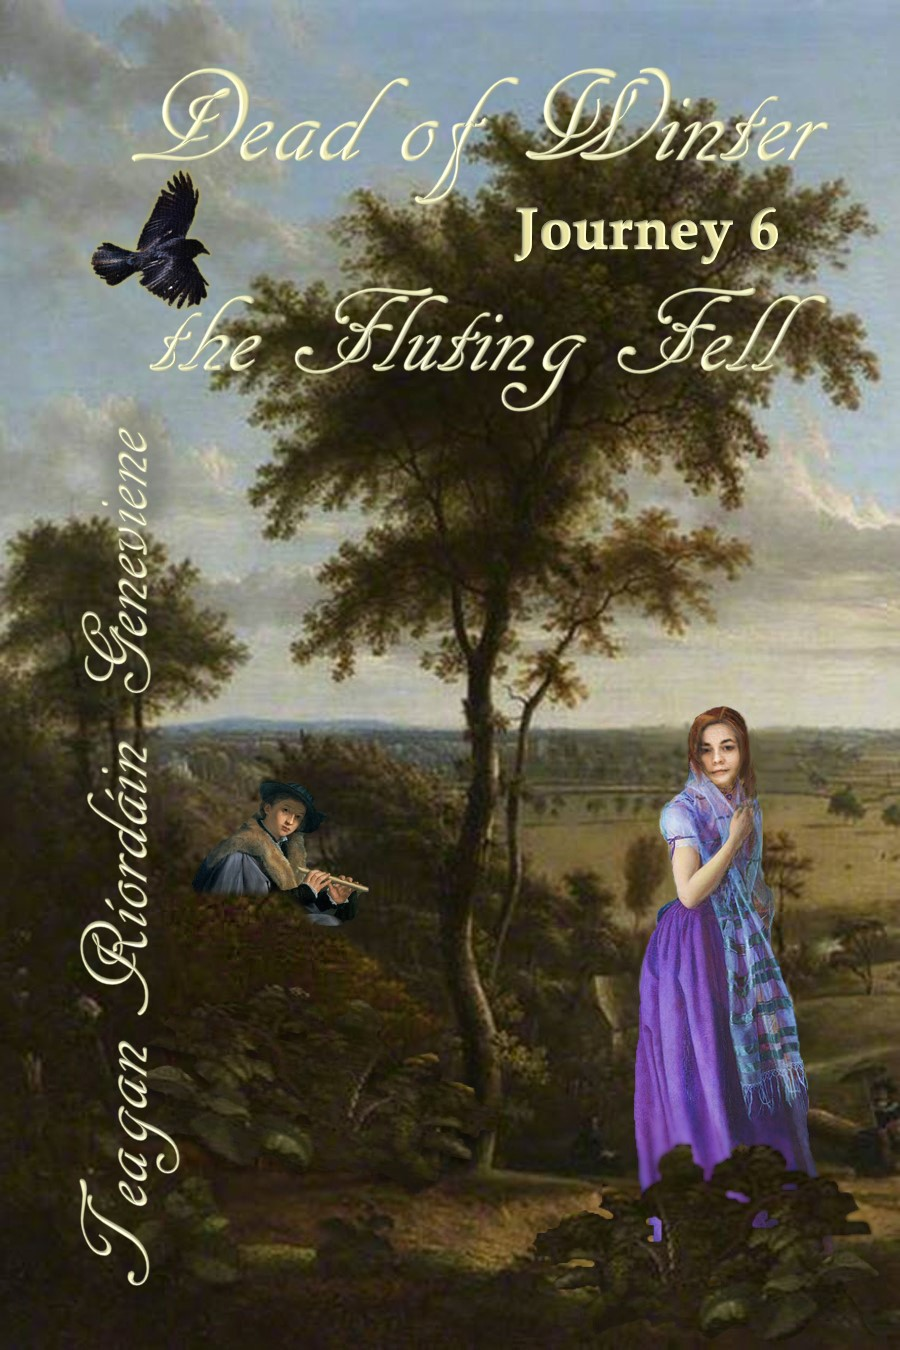 Dead of Winter: Journey 6, The Fluting Fell b cover and book y Teagan Riordain Geneviene